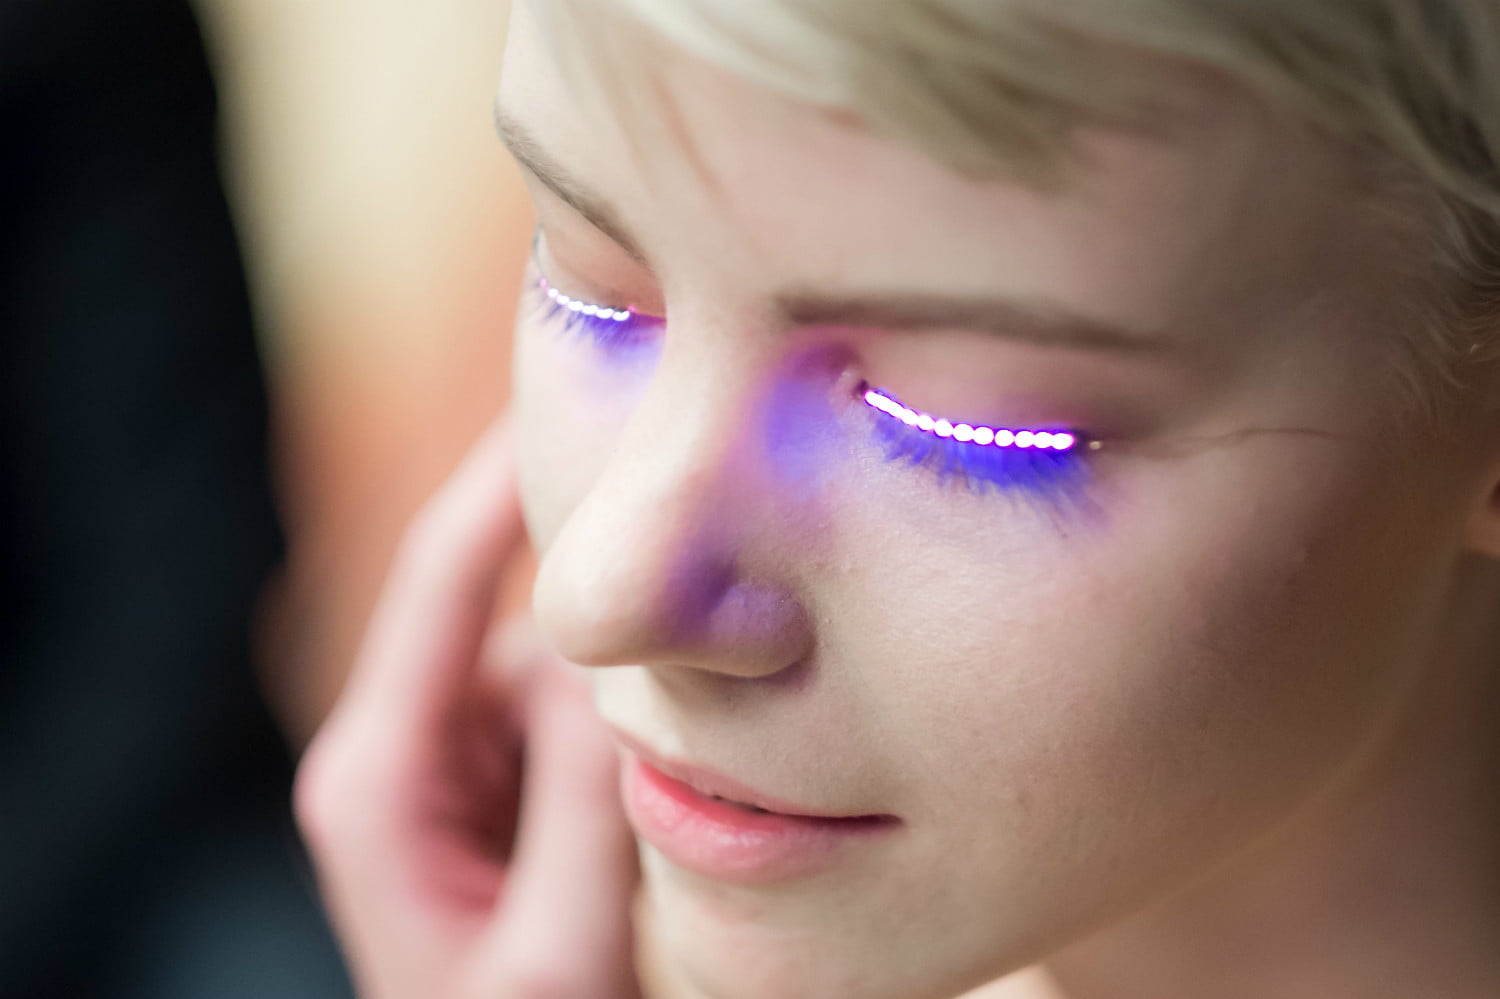 LED eyelashes - LED Eyelash Extensions!?!?